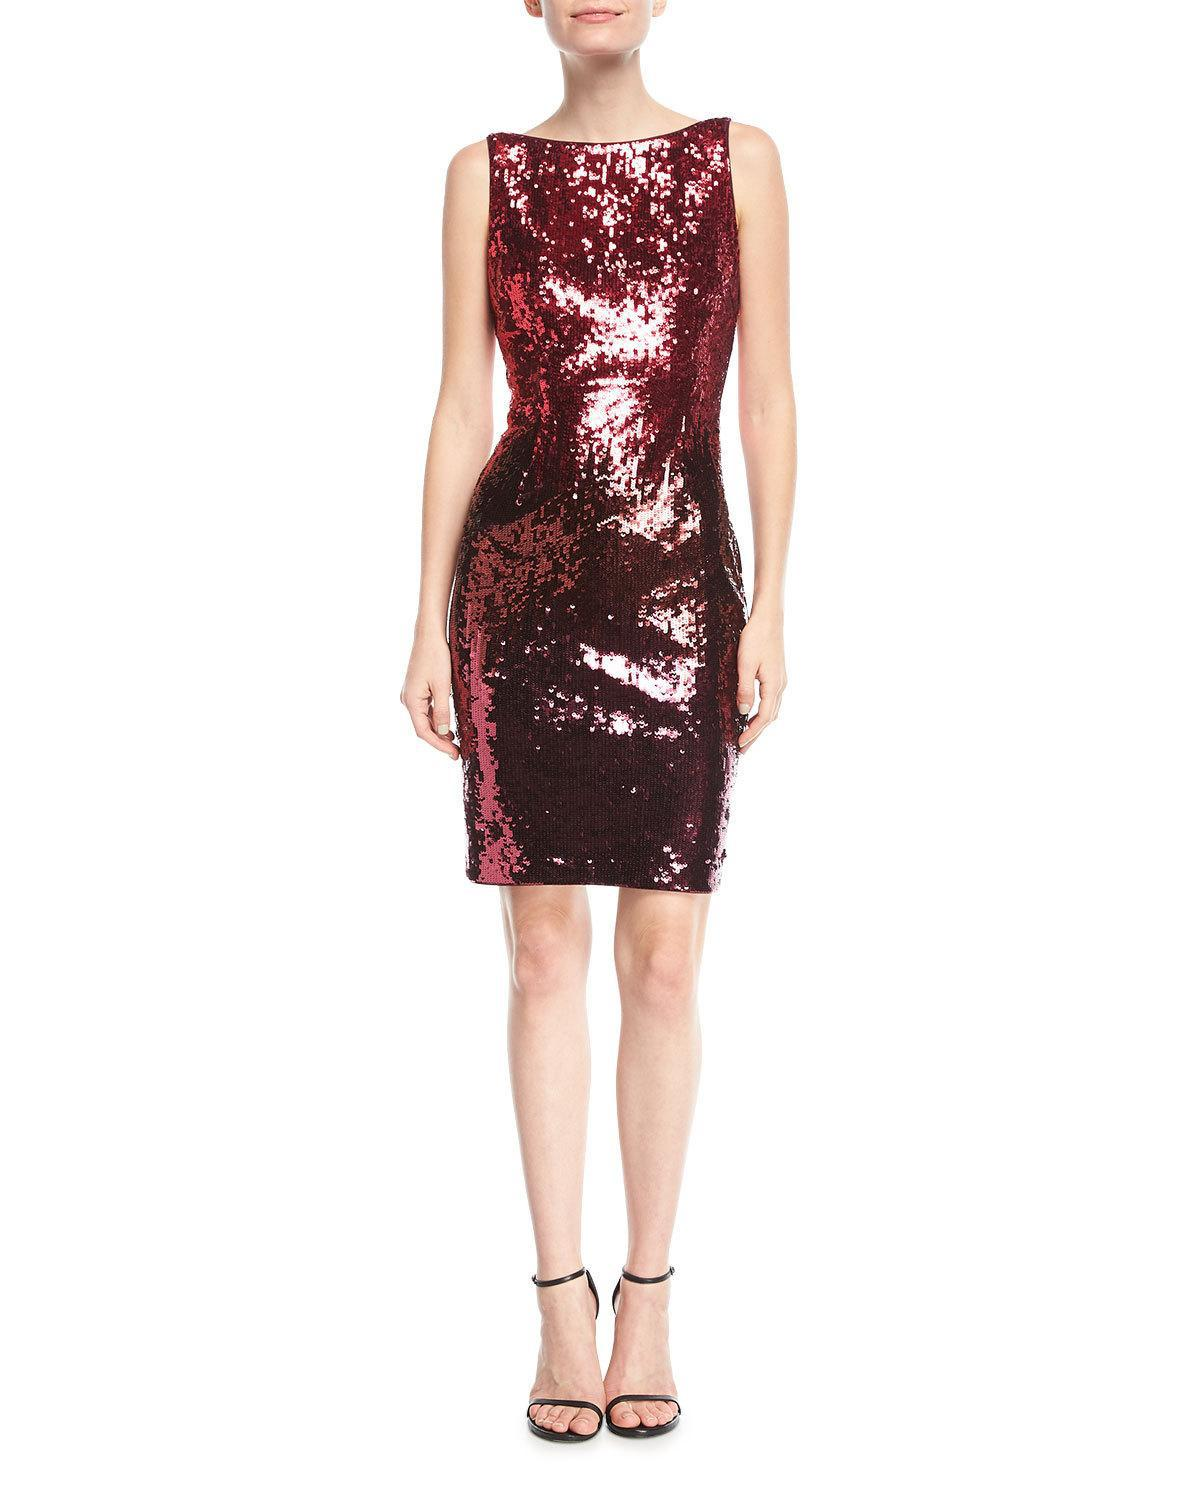 fbd545e7df Lyst - Aidan Mattox Sequin Bateau-neck Cocktail Dress in Red - Save 36%